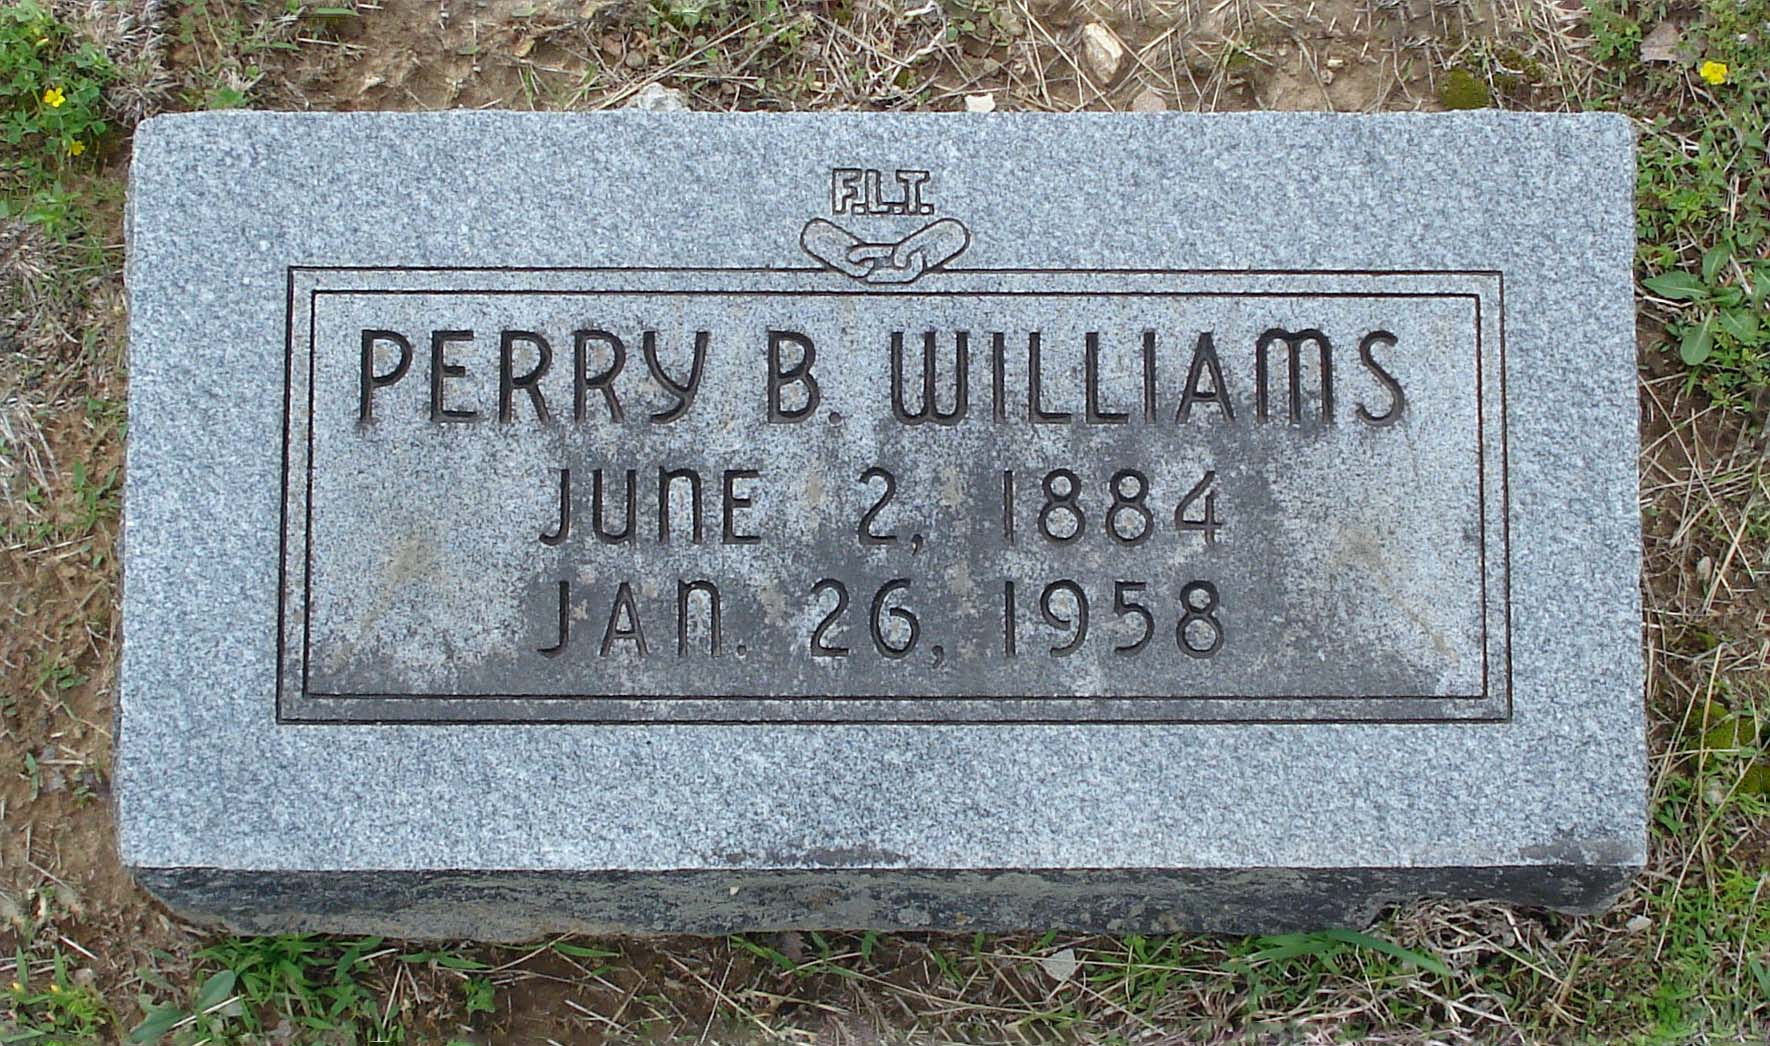 Perry B Williams